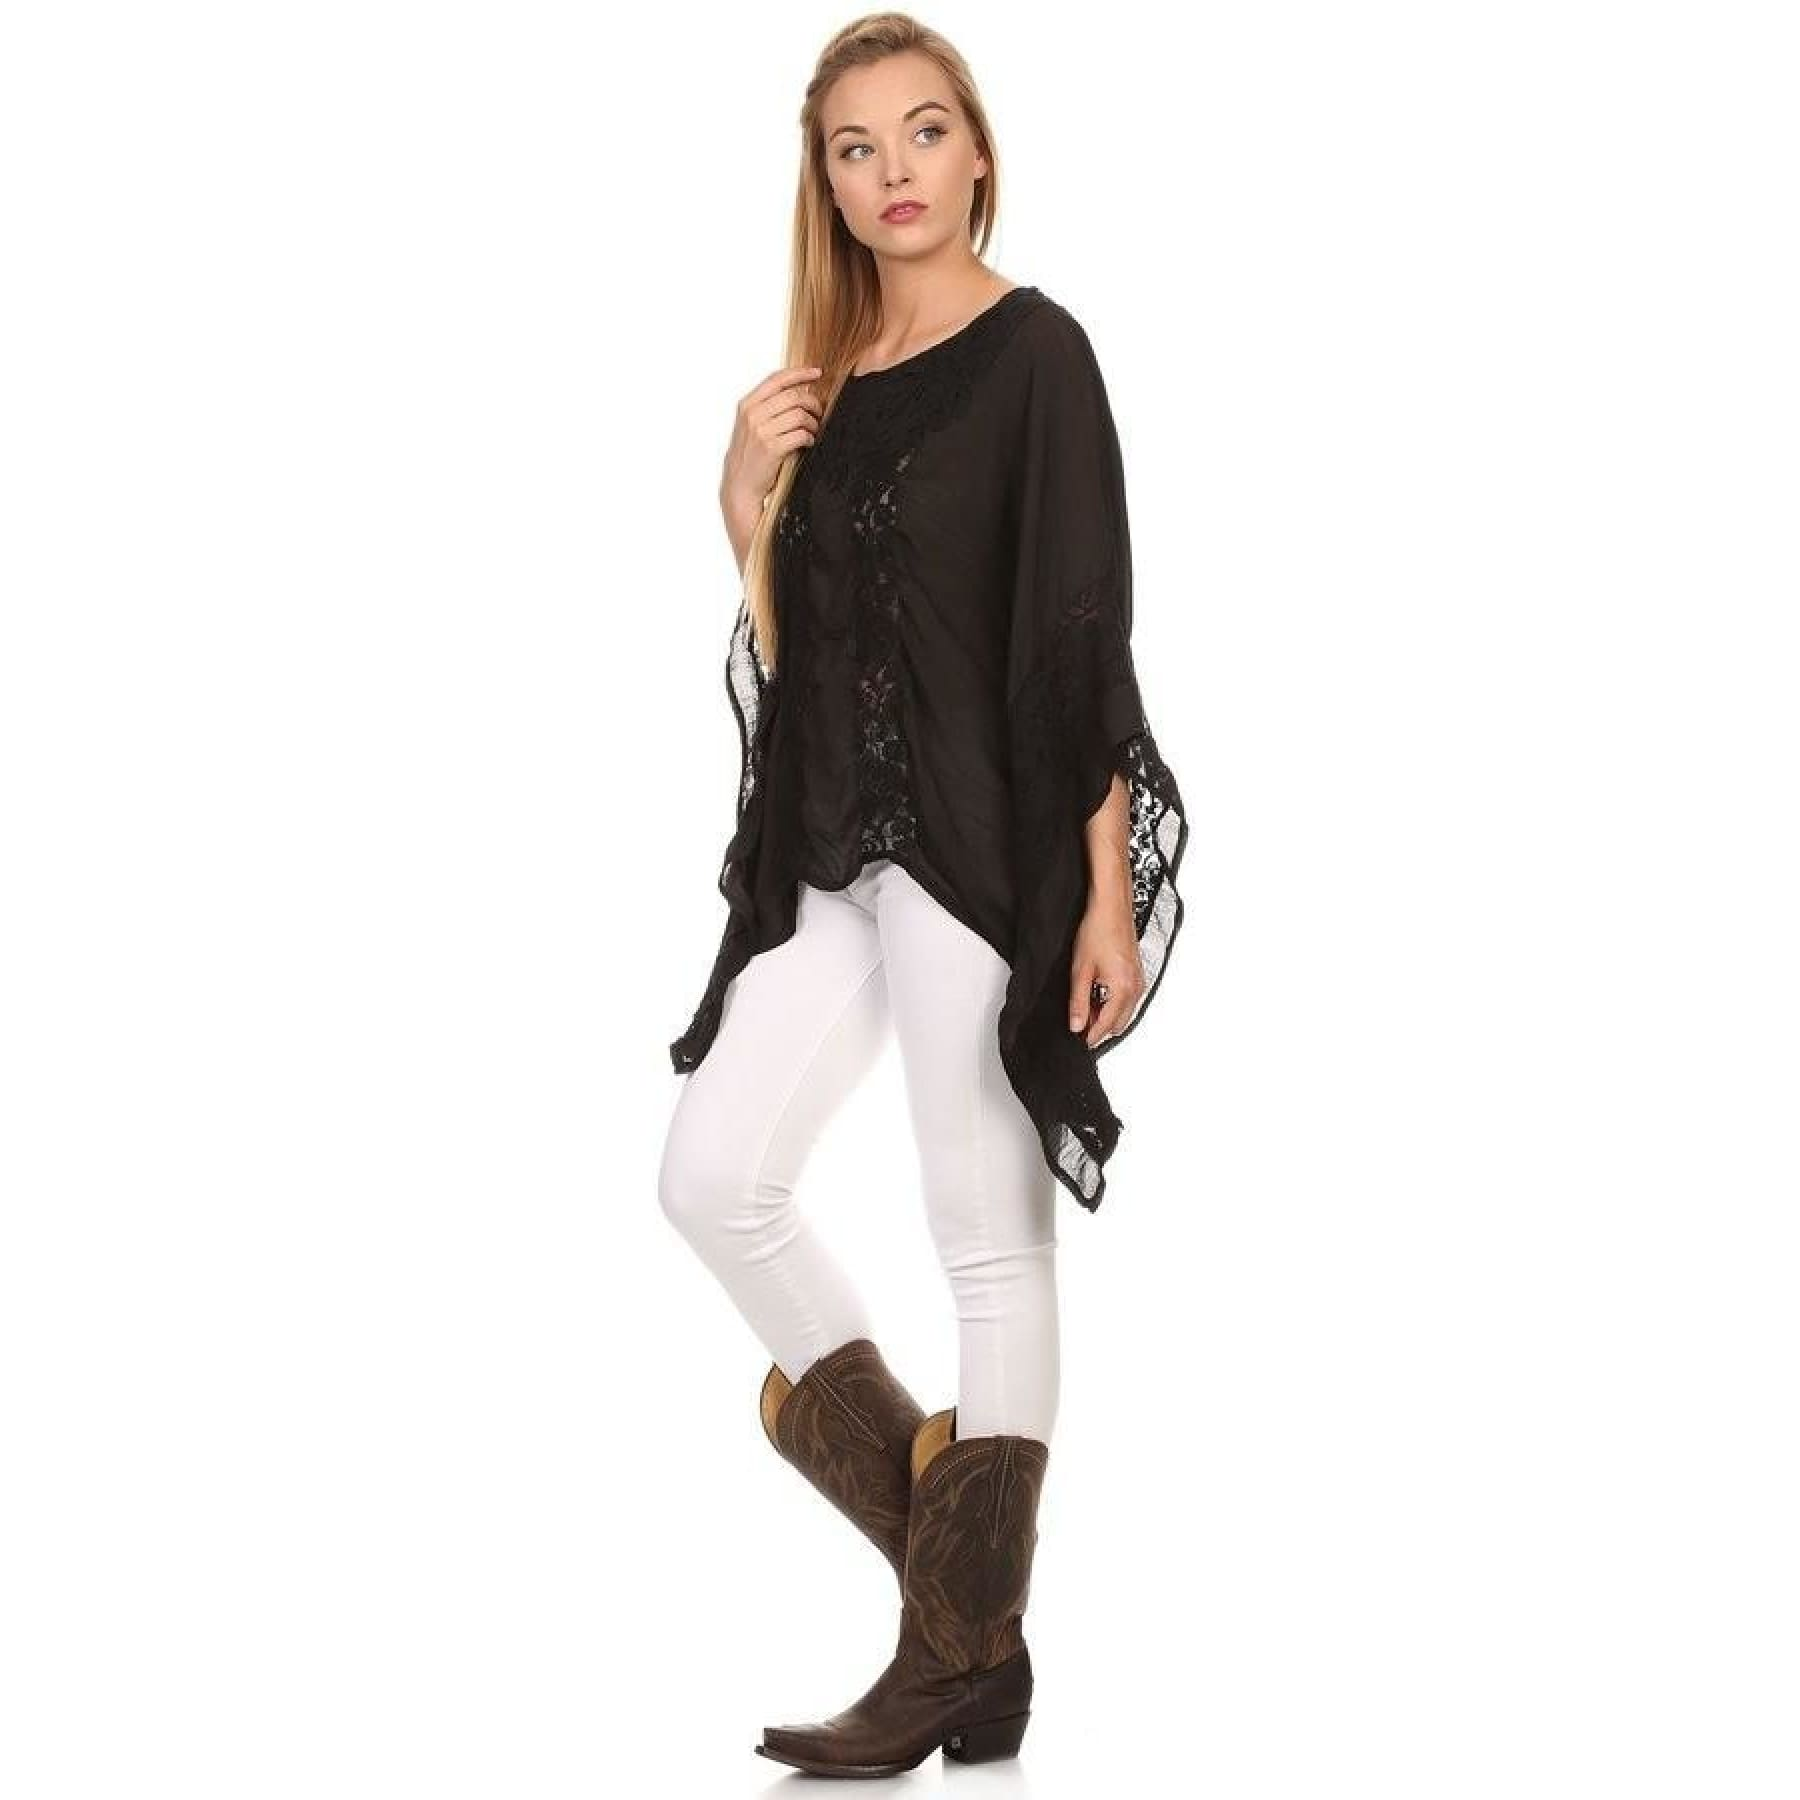 Lace Detail Flutter Sleeve Swing Top,Top - Dirt Road Divas Boutique